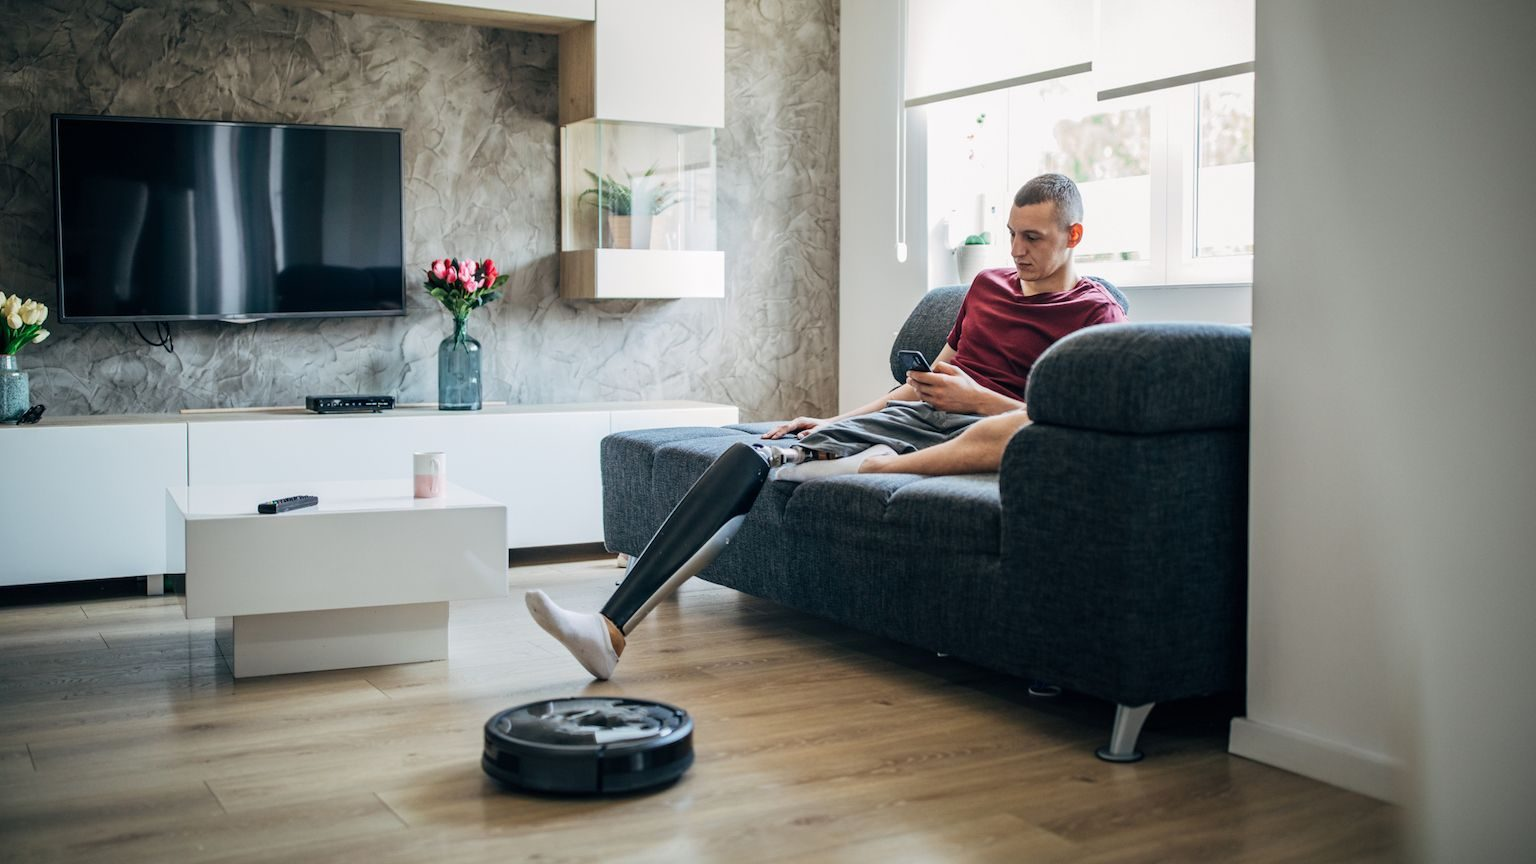 A man with a prosthetic leg using a robot vacuum.